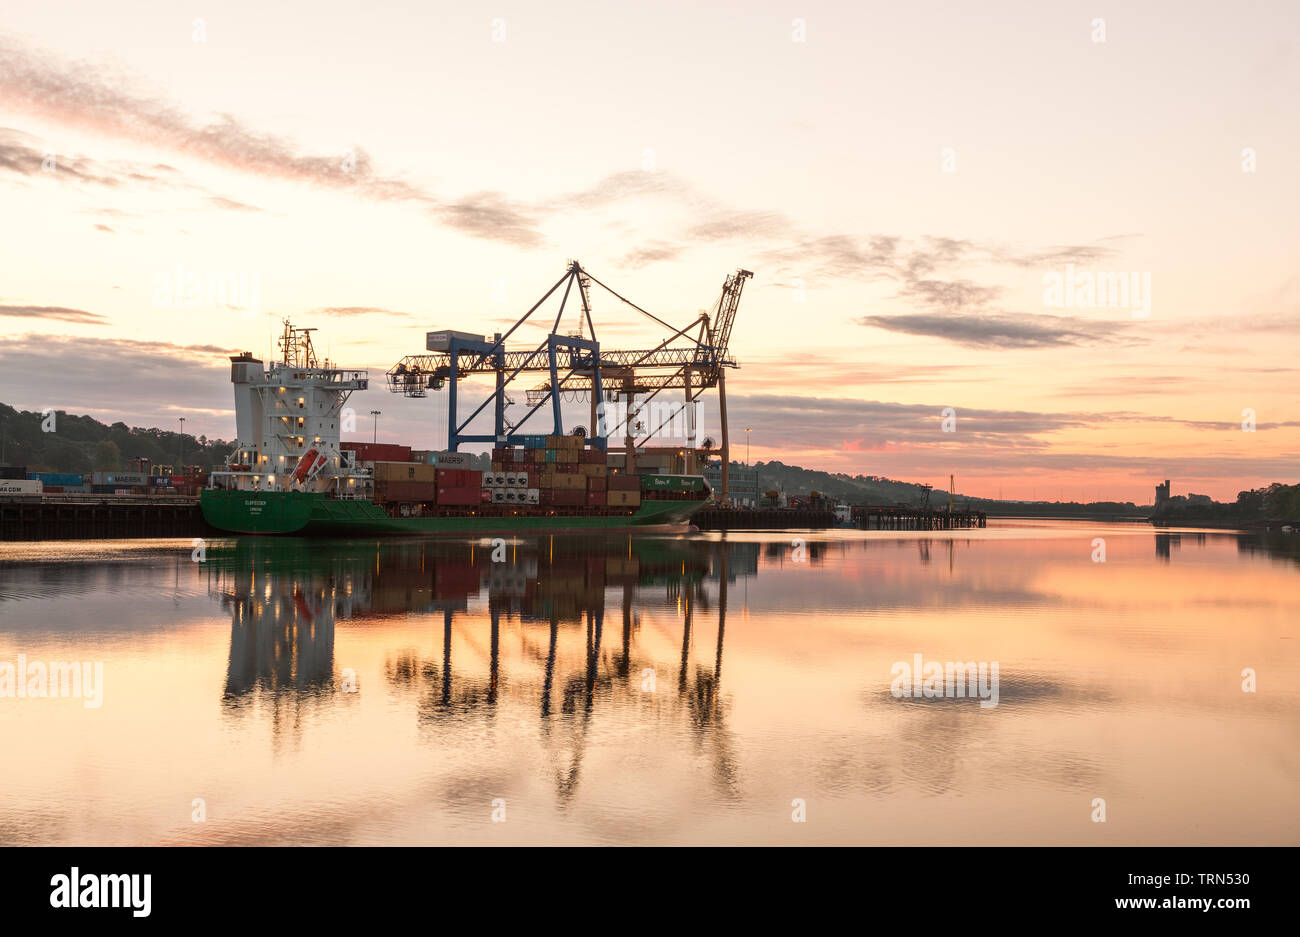 Tivoli, Cork, Ireland. 10th June, 2019. A bright summer's morning as the cargo ship Elbffeder  loads containers for export before sunrise at Tivoli Docks in Cork, Ireland. Credit; David Creedon / Alamy Live News - Stock Image